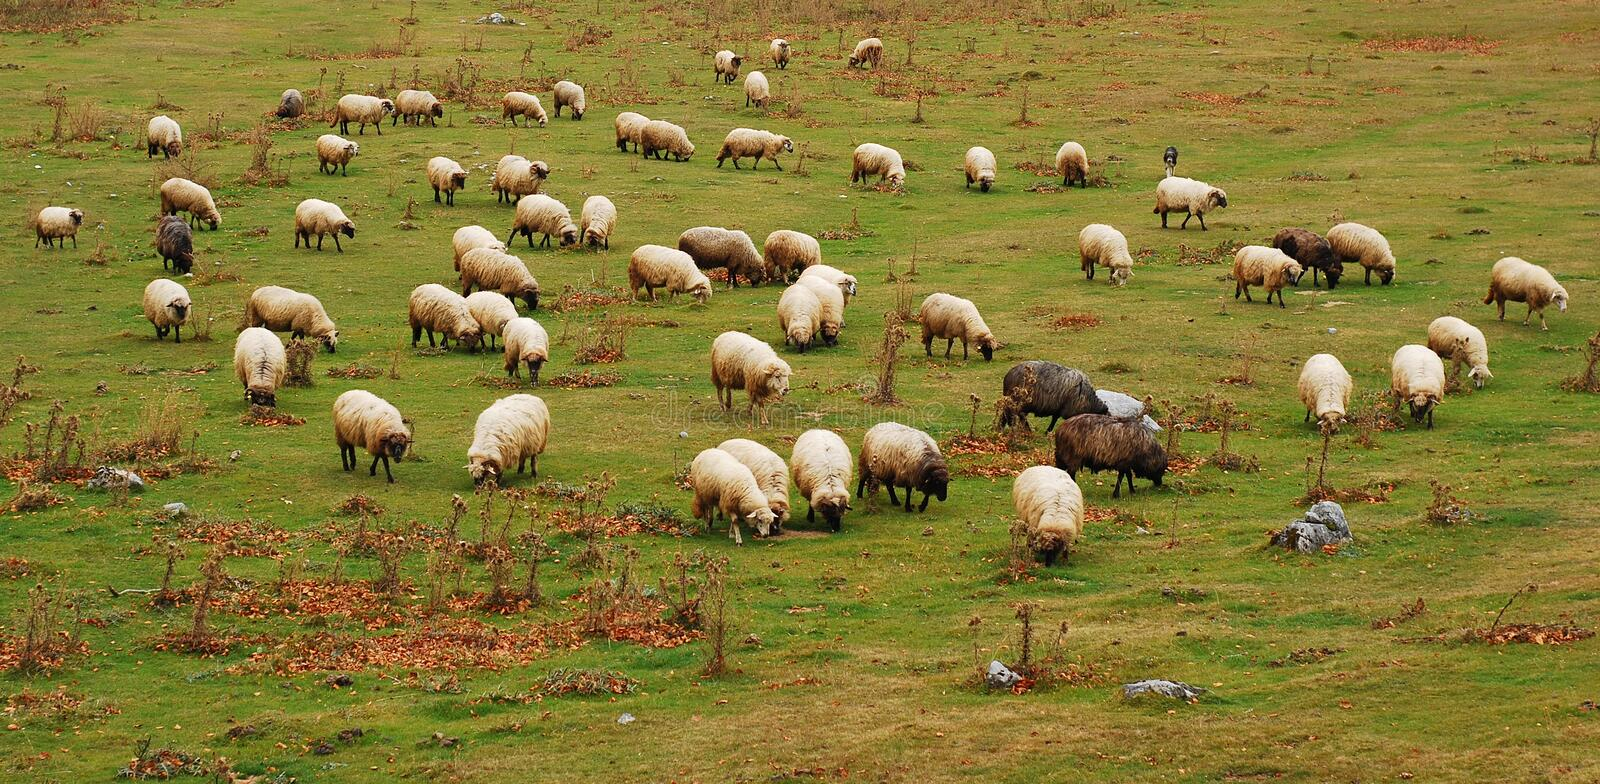 Download Sheep stock photo. Image of pasture, sheep, domestic - 27593084